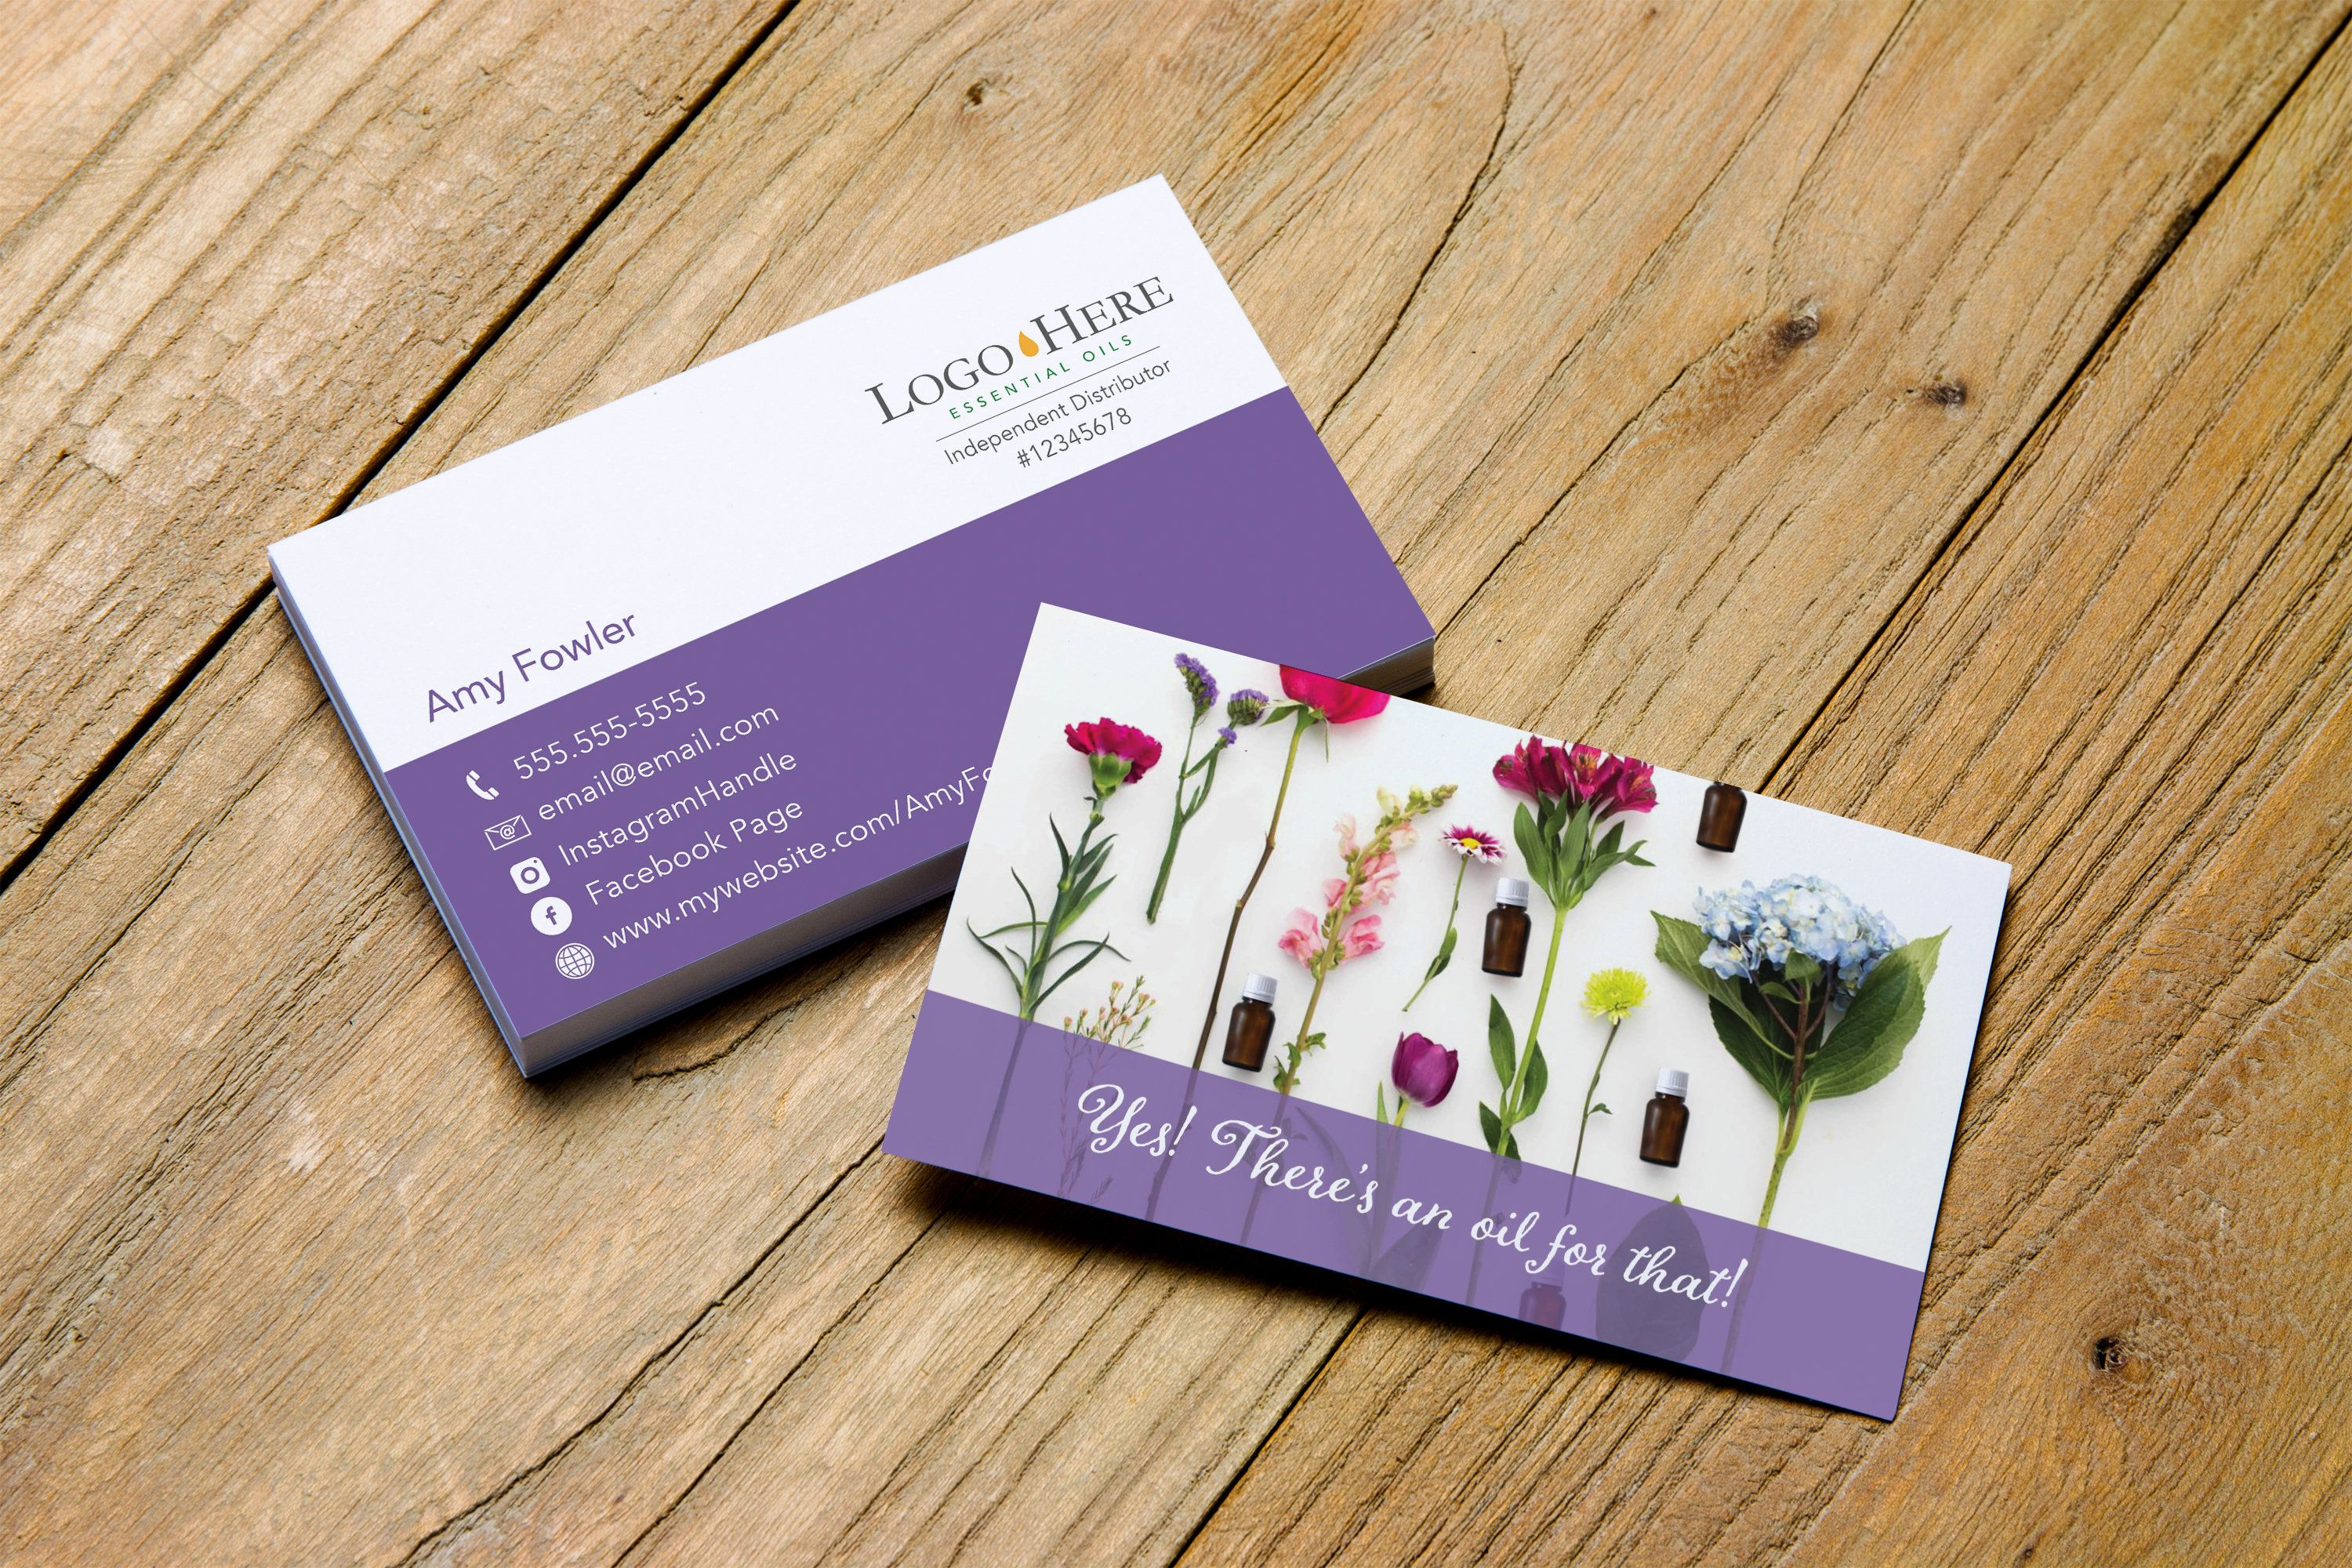 There S An Oil For That Business Card Design Personalized For